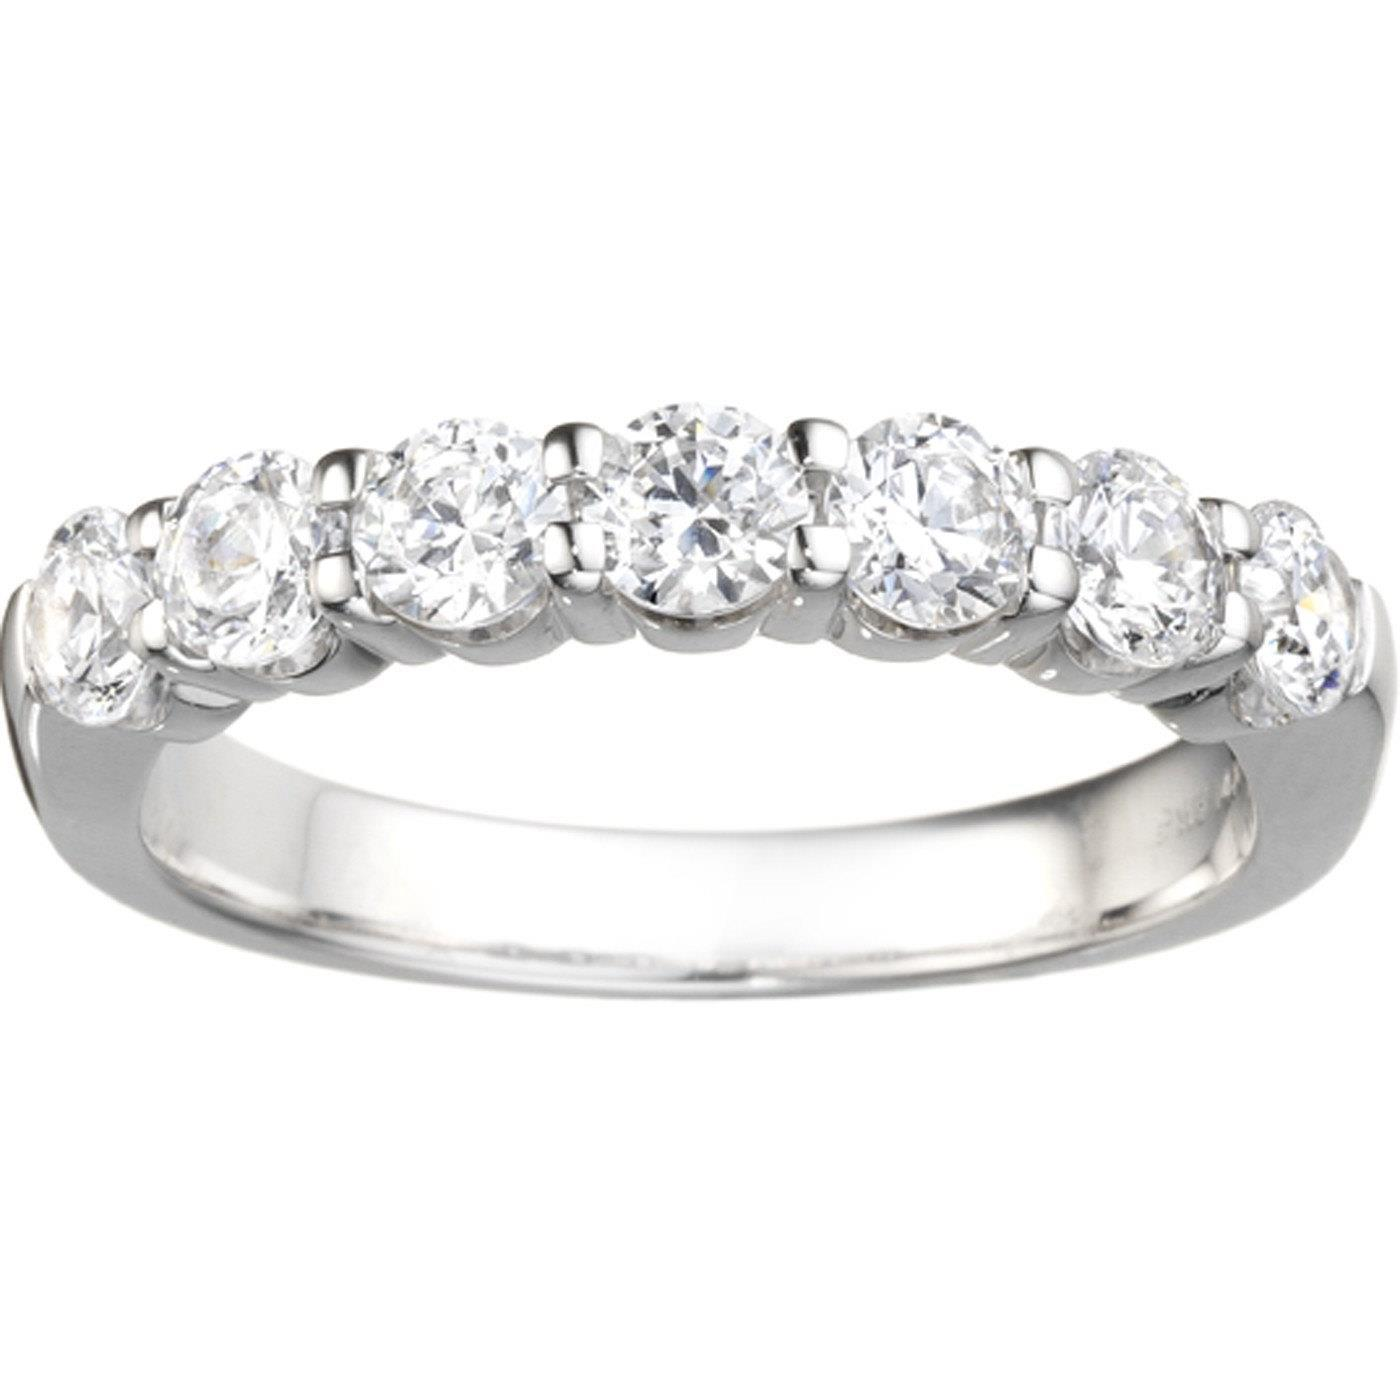 1.05 Ct Round Diamond Wedding Band 14K White Gold Band